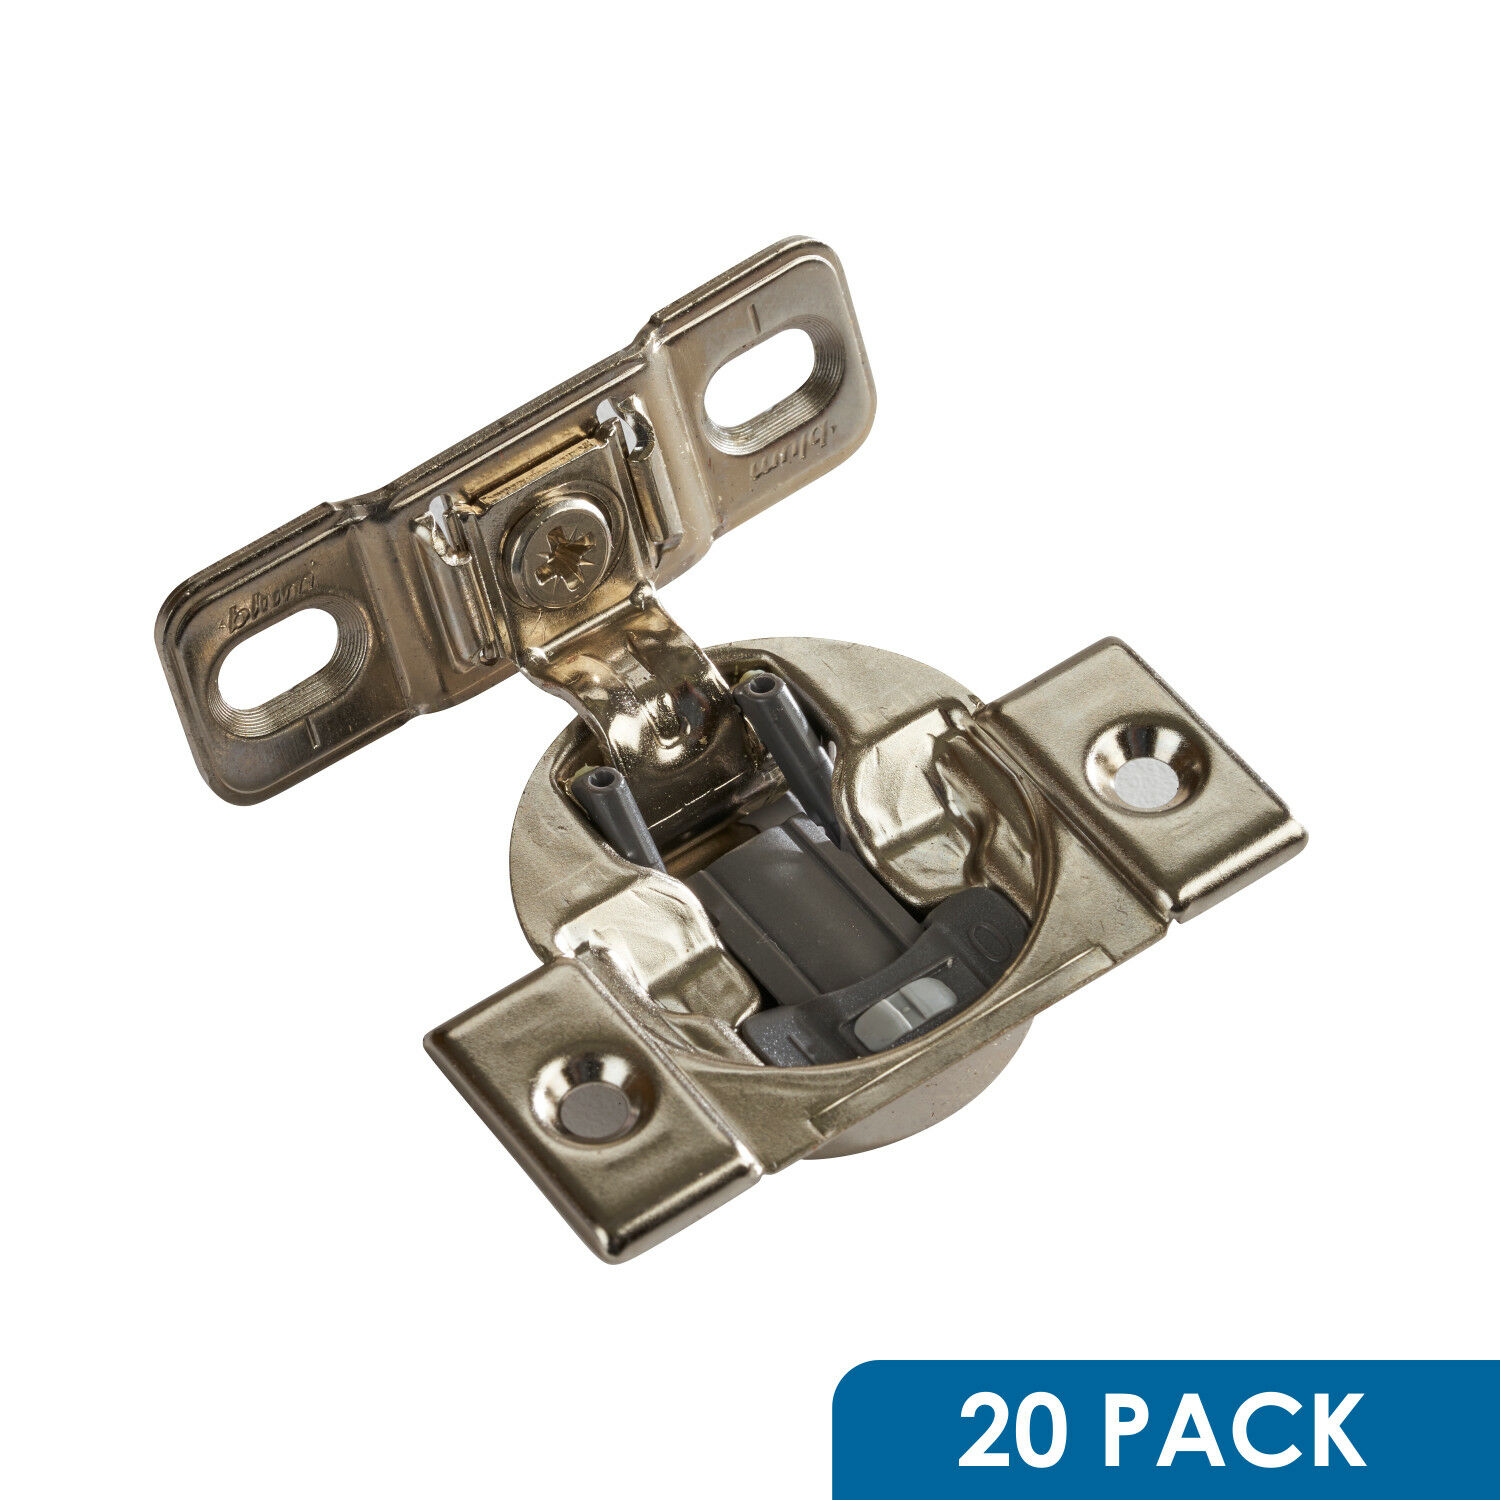 20 Blaum Compact 1-3 8 + Overlay Face Frame Hinge Screw in Soft Close 38B355BF22